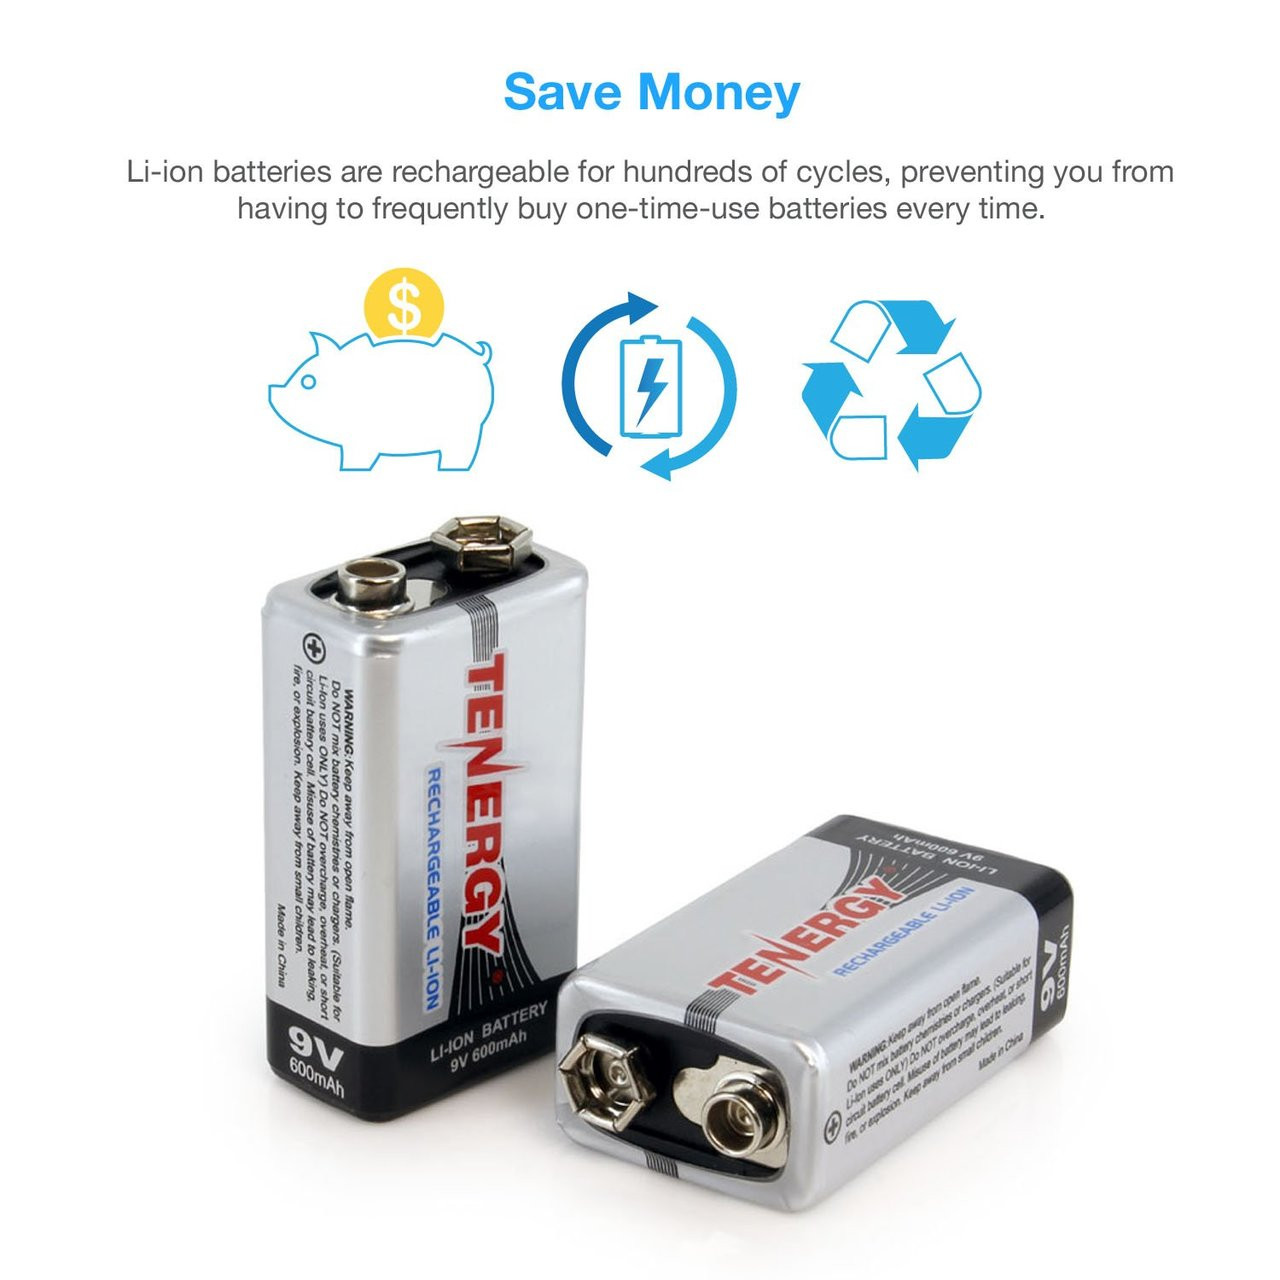 Tenergy Li-ion 9V 600mAh Rechargeable Battery, 10-pack + TN295 10-Bay Charger